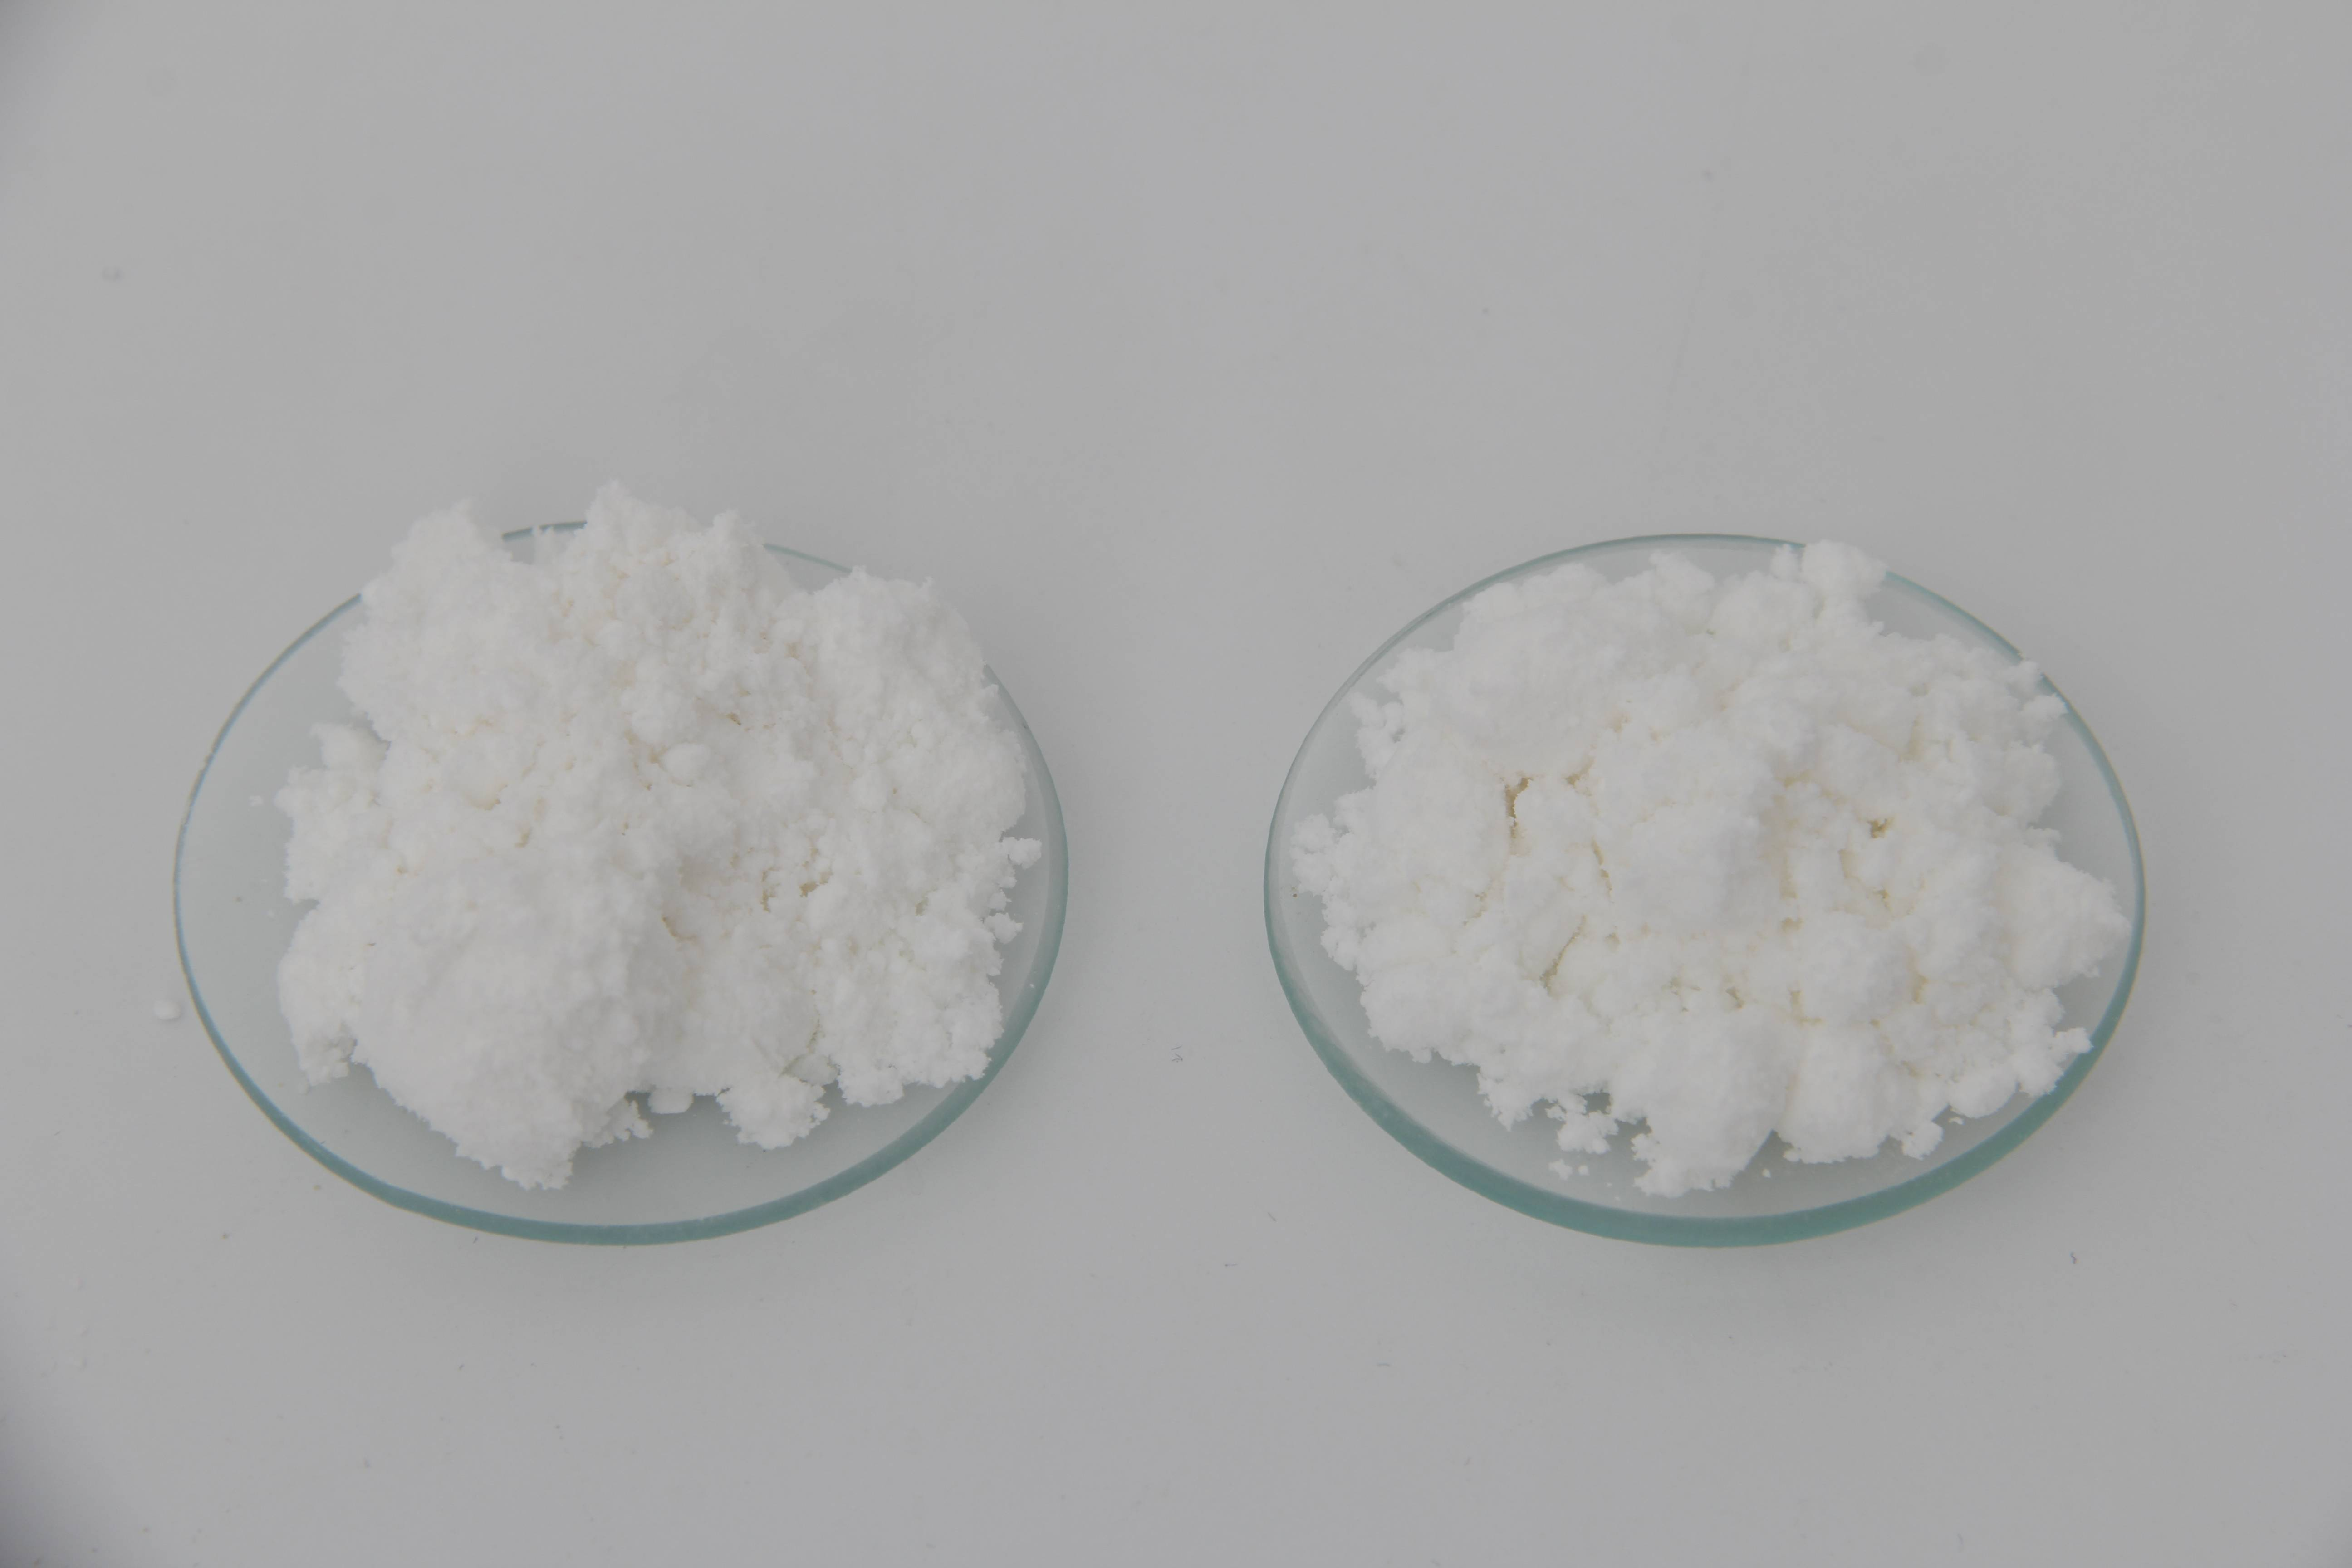 High Quality Tetramisole Hydrochloride CAS: 5086-74-8 Powder with 99 Purity Featured Image